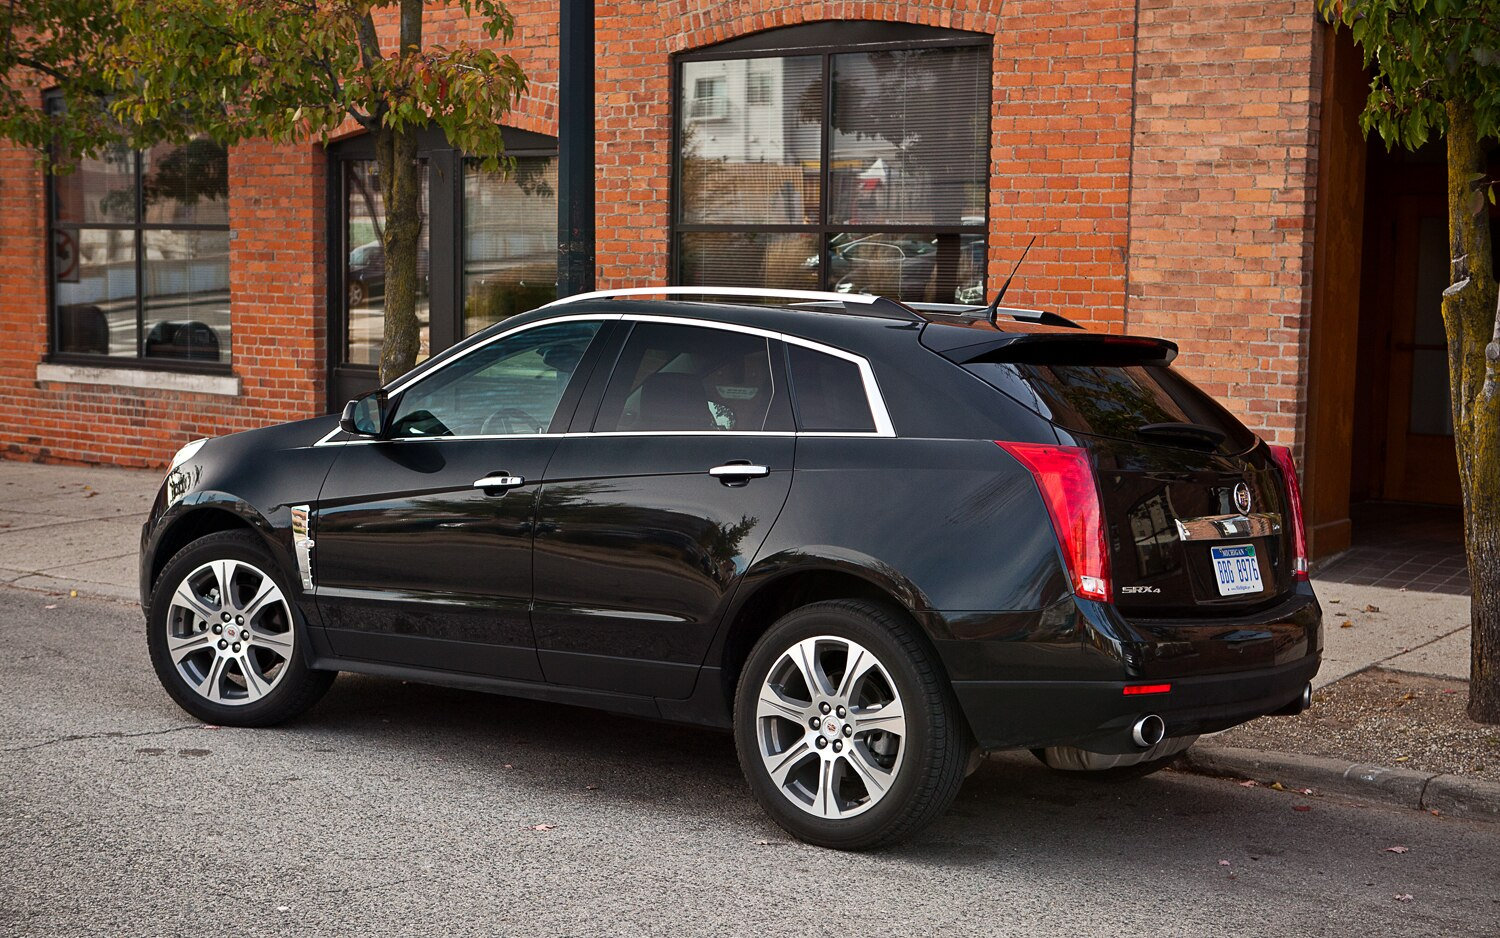 Two things really stood out to me about the cadillac srx